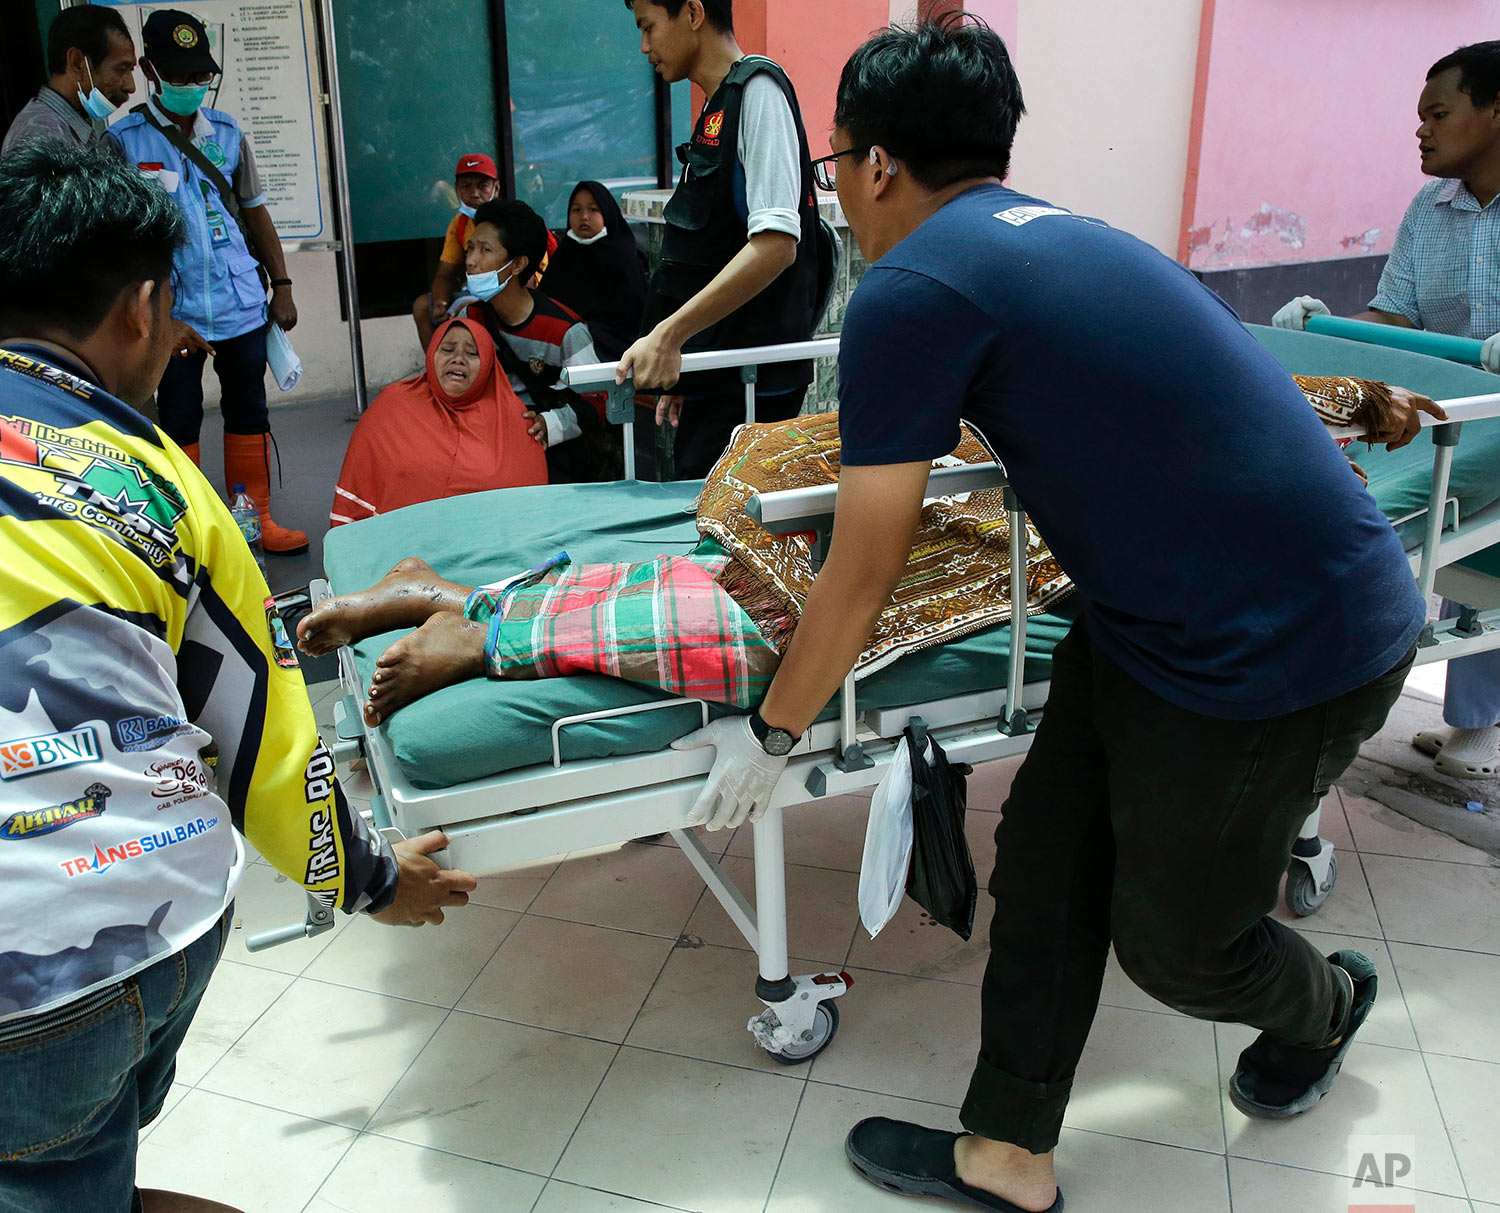 An injured man is brought to the hospital as one woman cries after learning about her daughter's death in a massive earthquake and tsunami in Palu, Central Sulawesi, Indonesia, Oct. 4, 2018. (AP Photo/Aaron Favila)